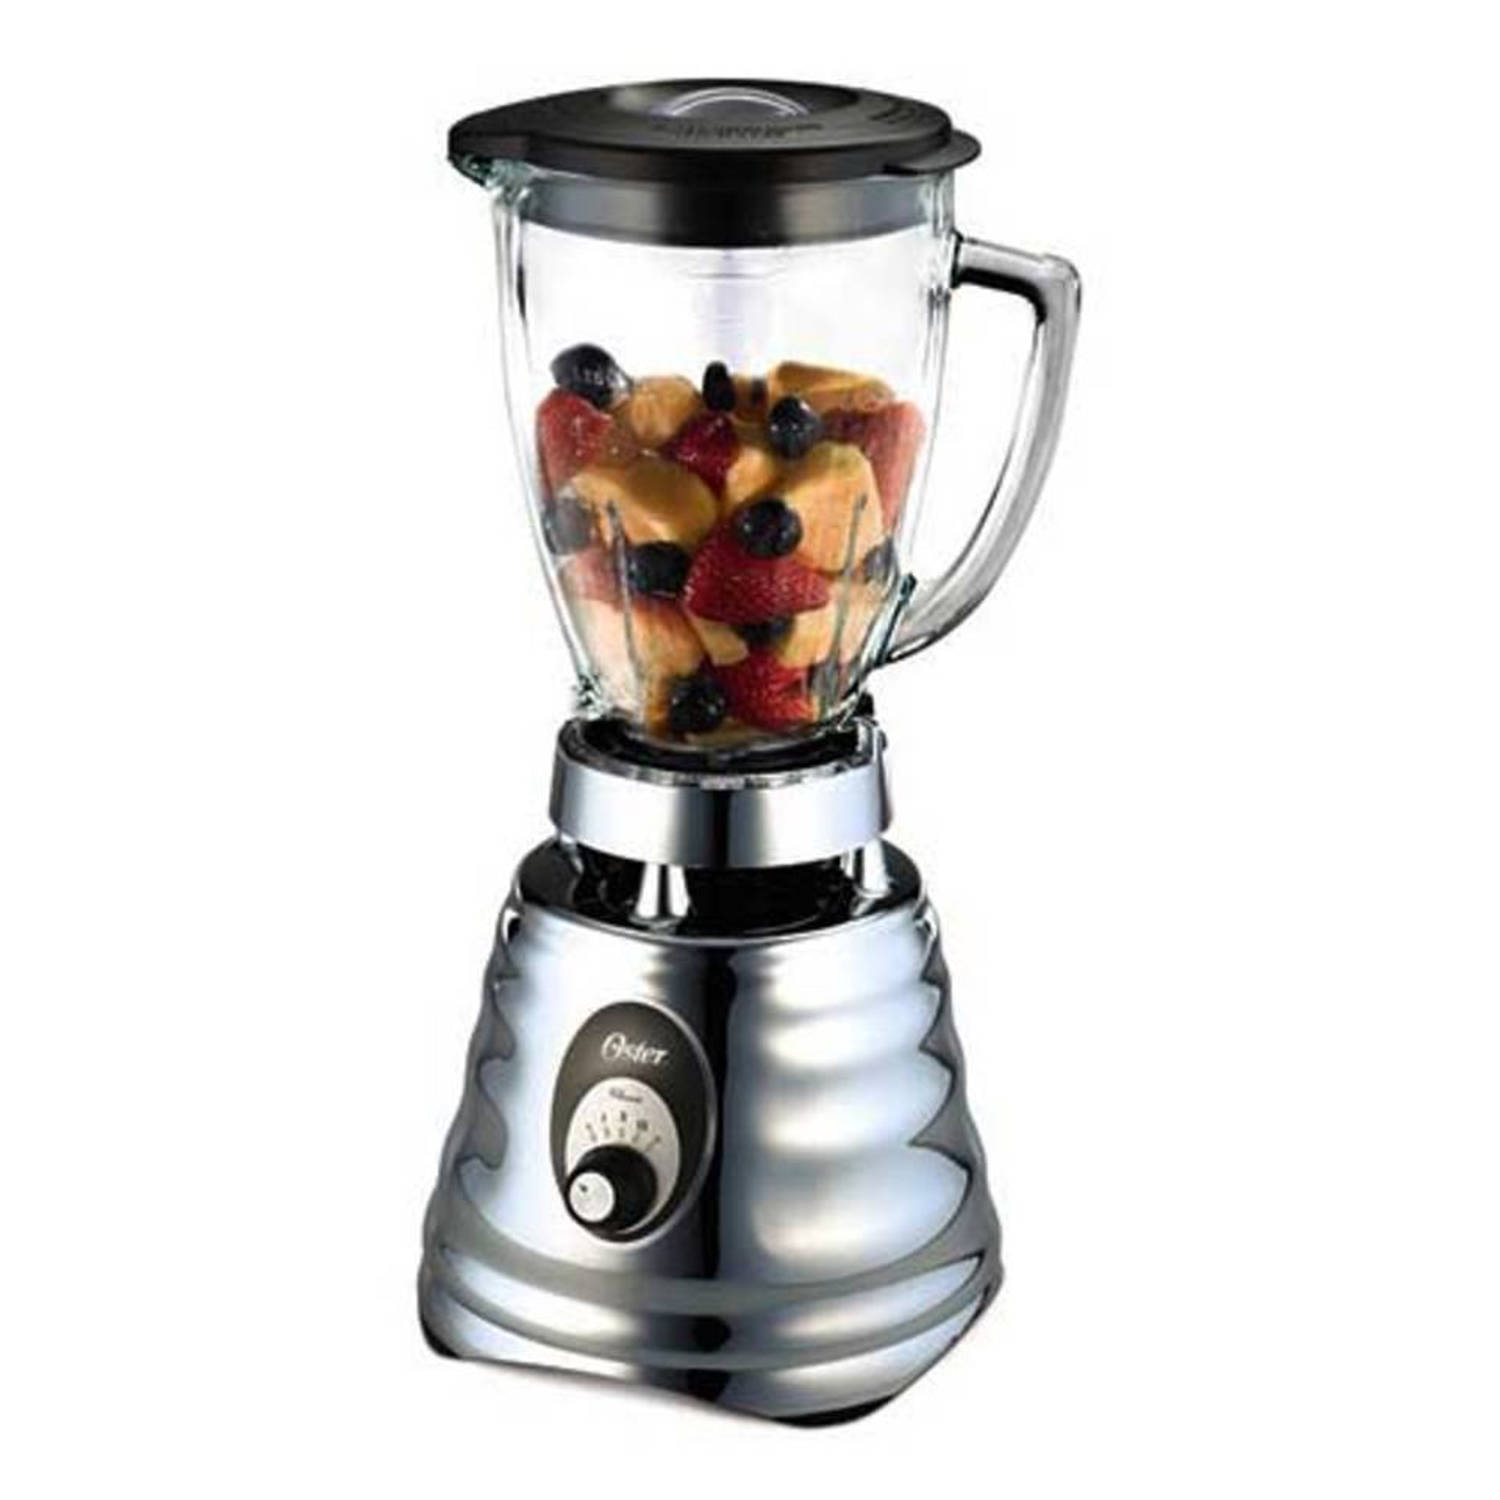 Blender beehive classic os4655 - oster